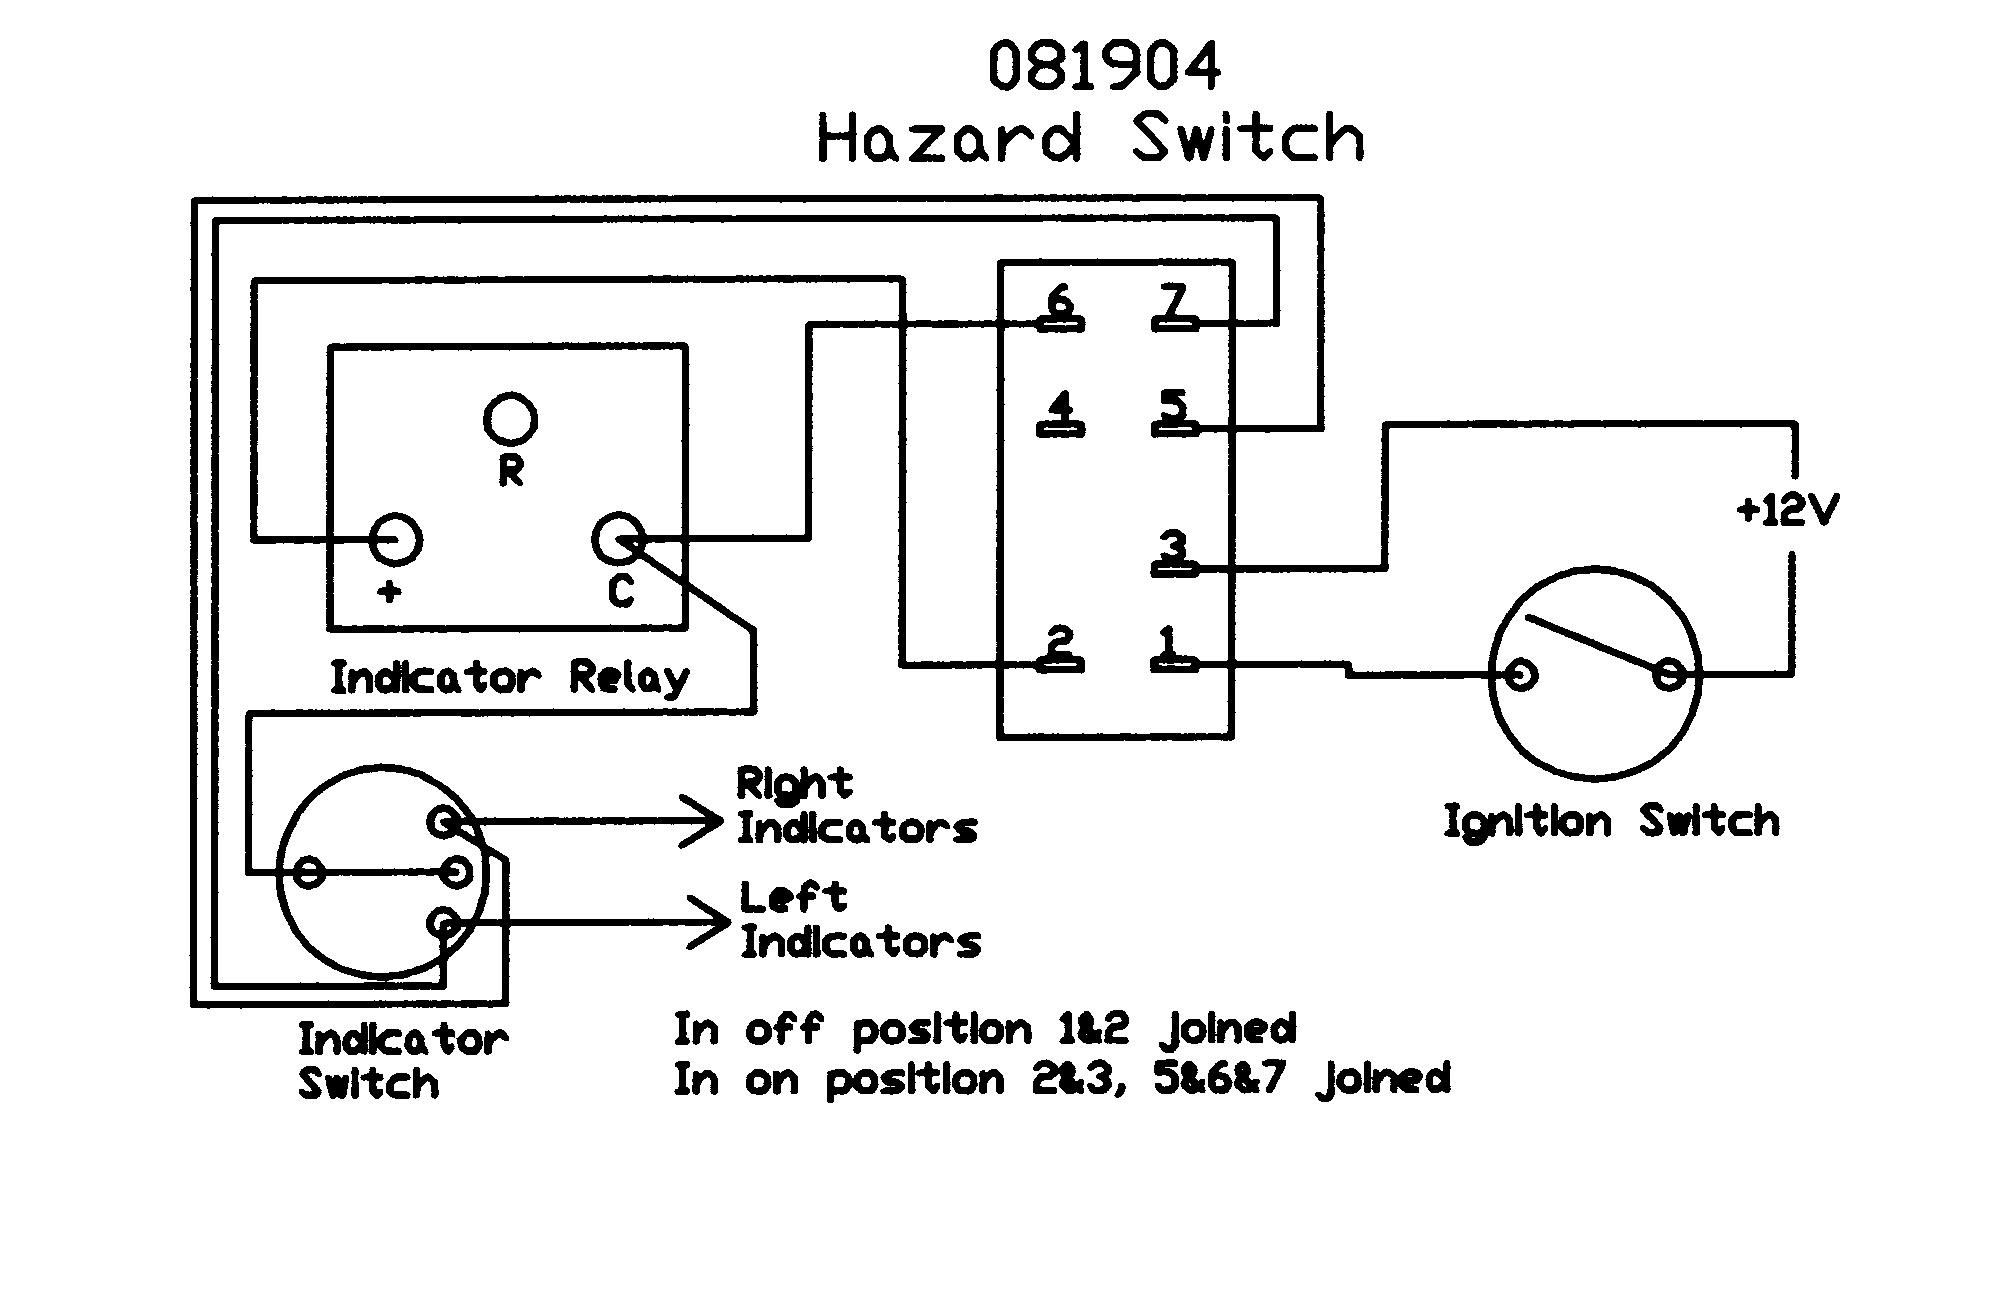 Wiring Diagram For 12v Indicators : Hazard switch rocker